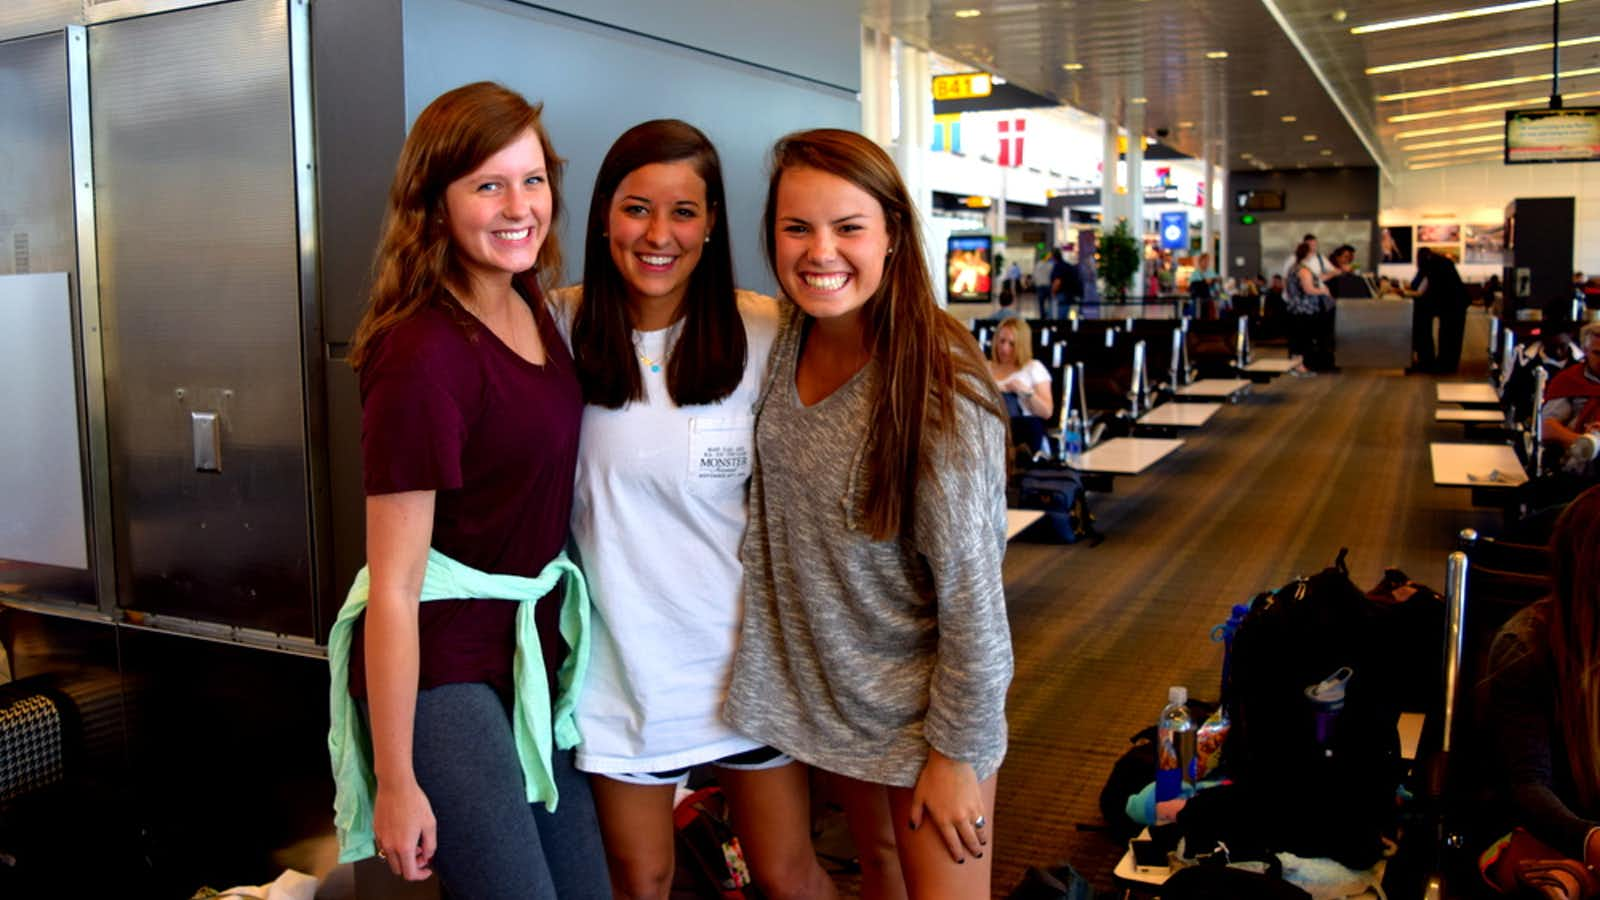 Students at the airport